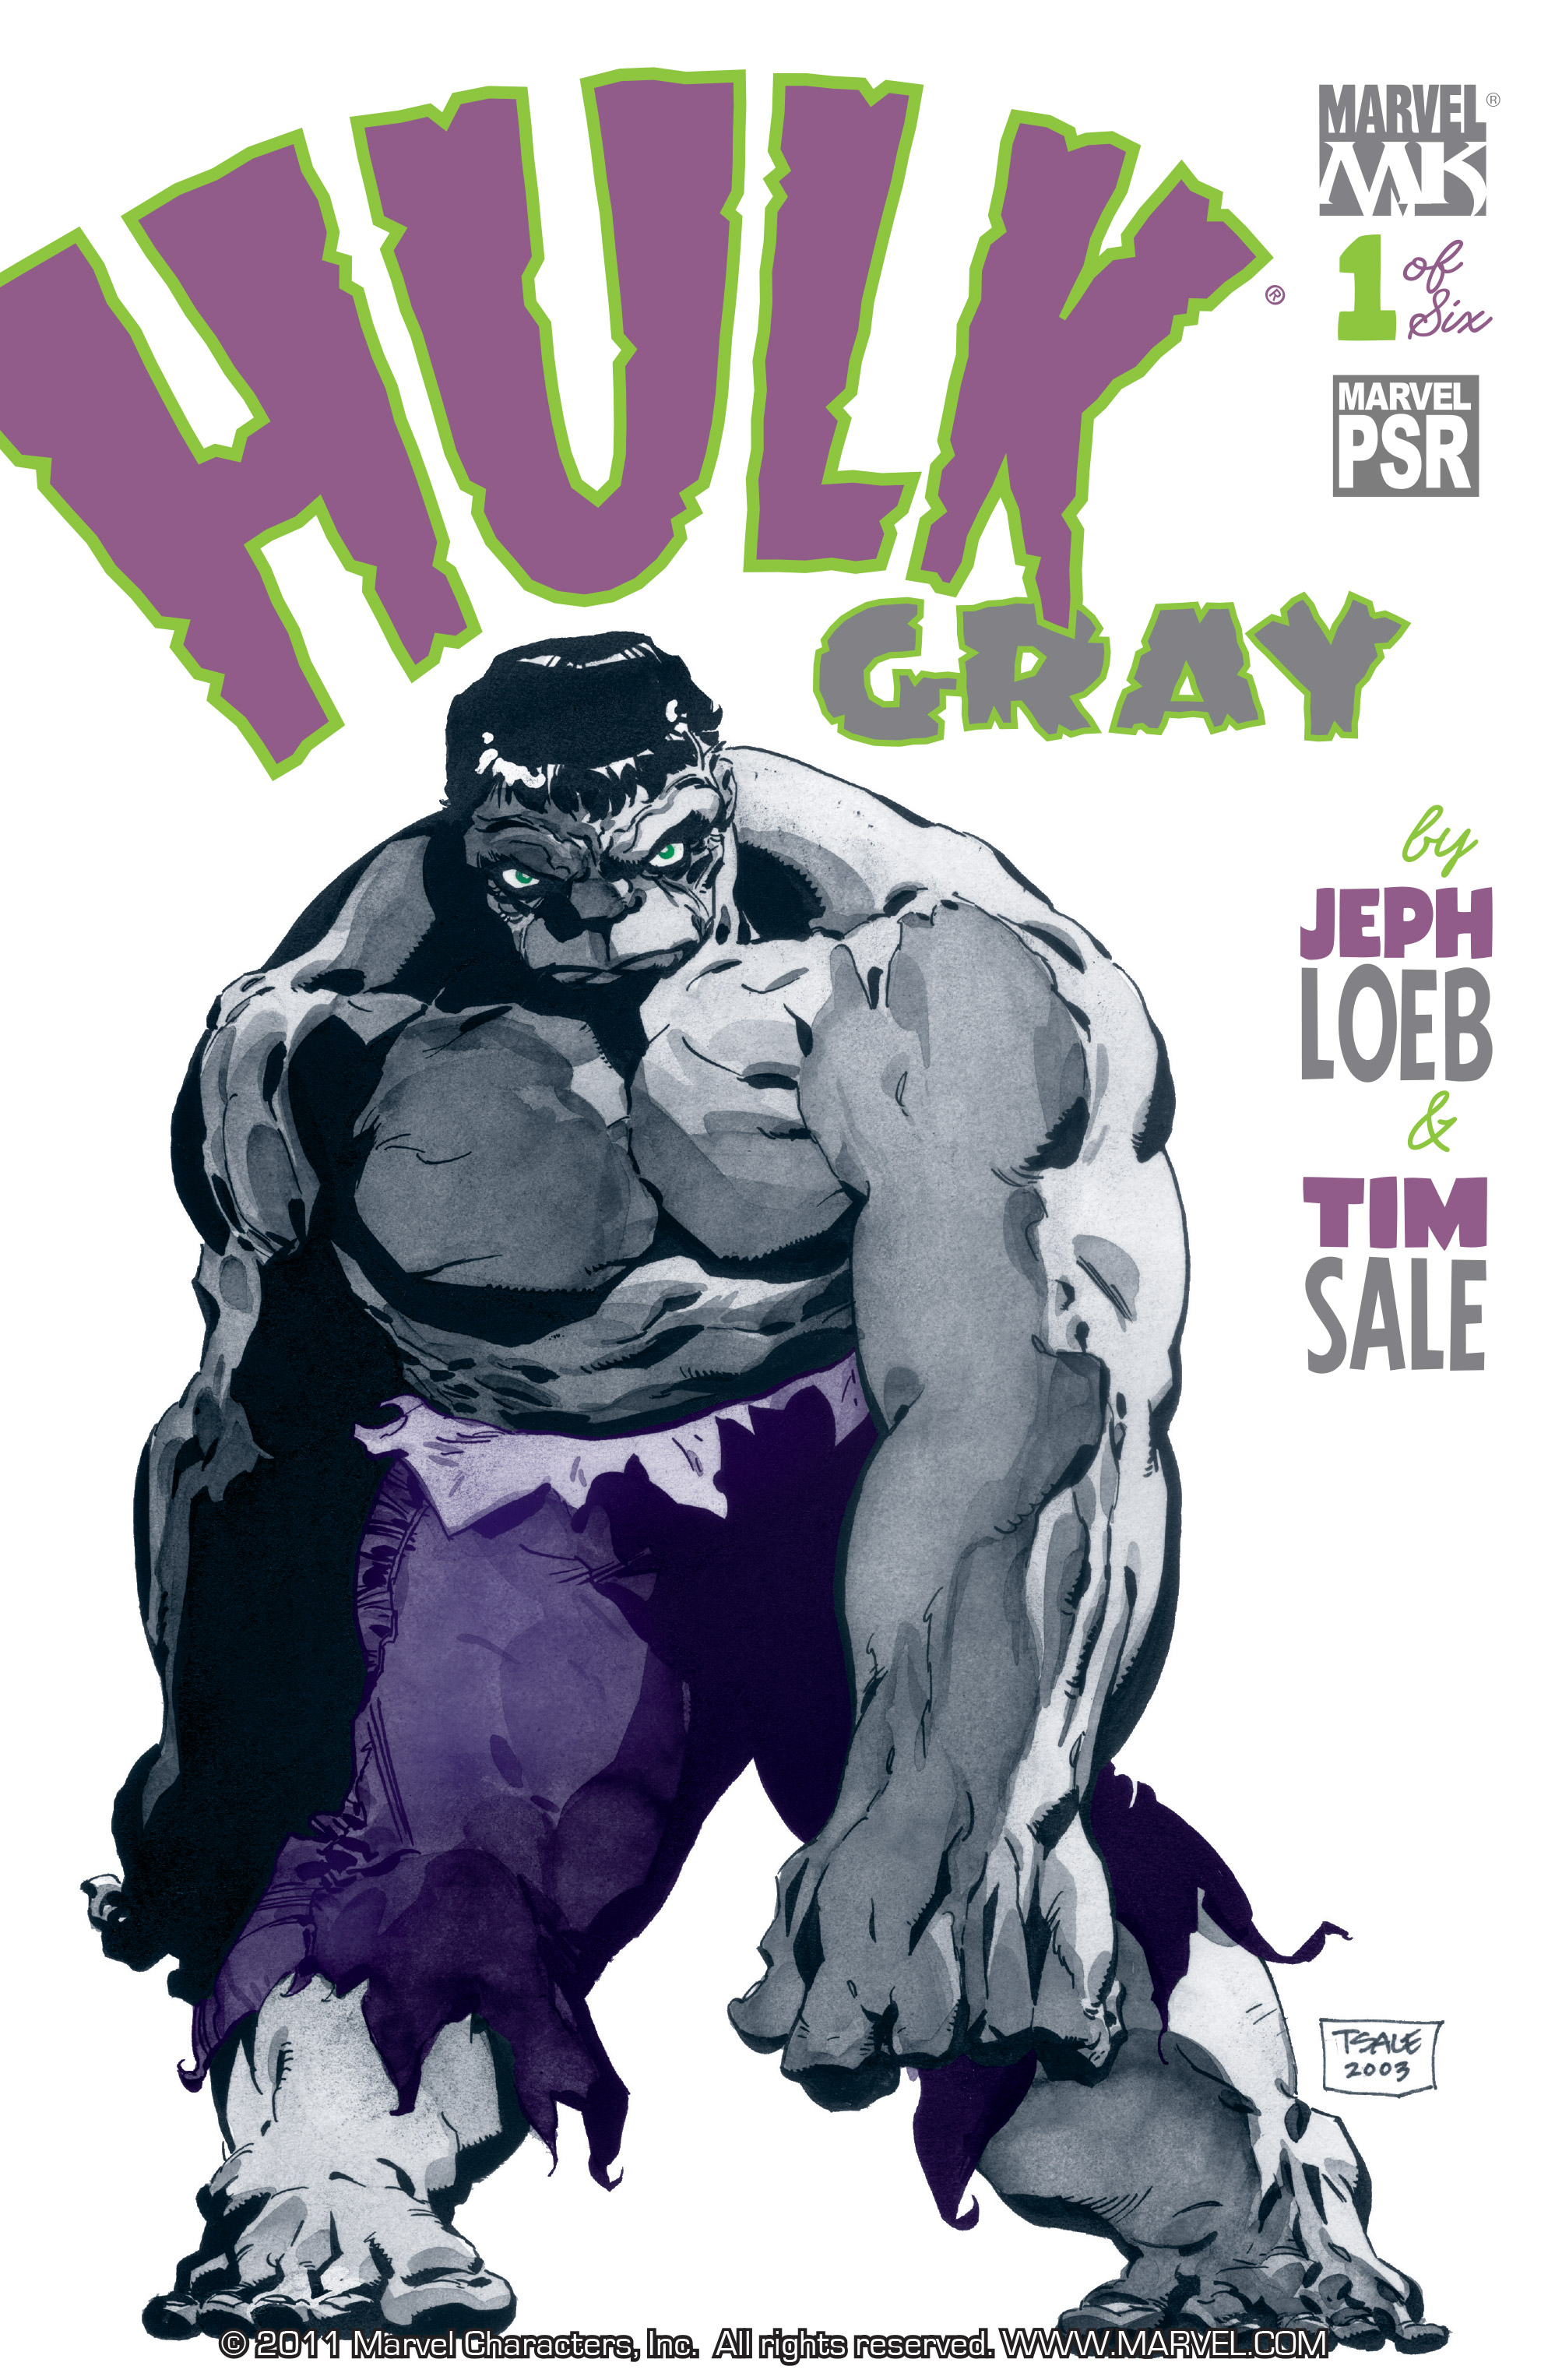 Read online Hulk: Gray comic -  Issue #1 - 1